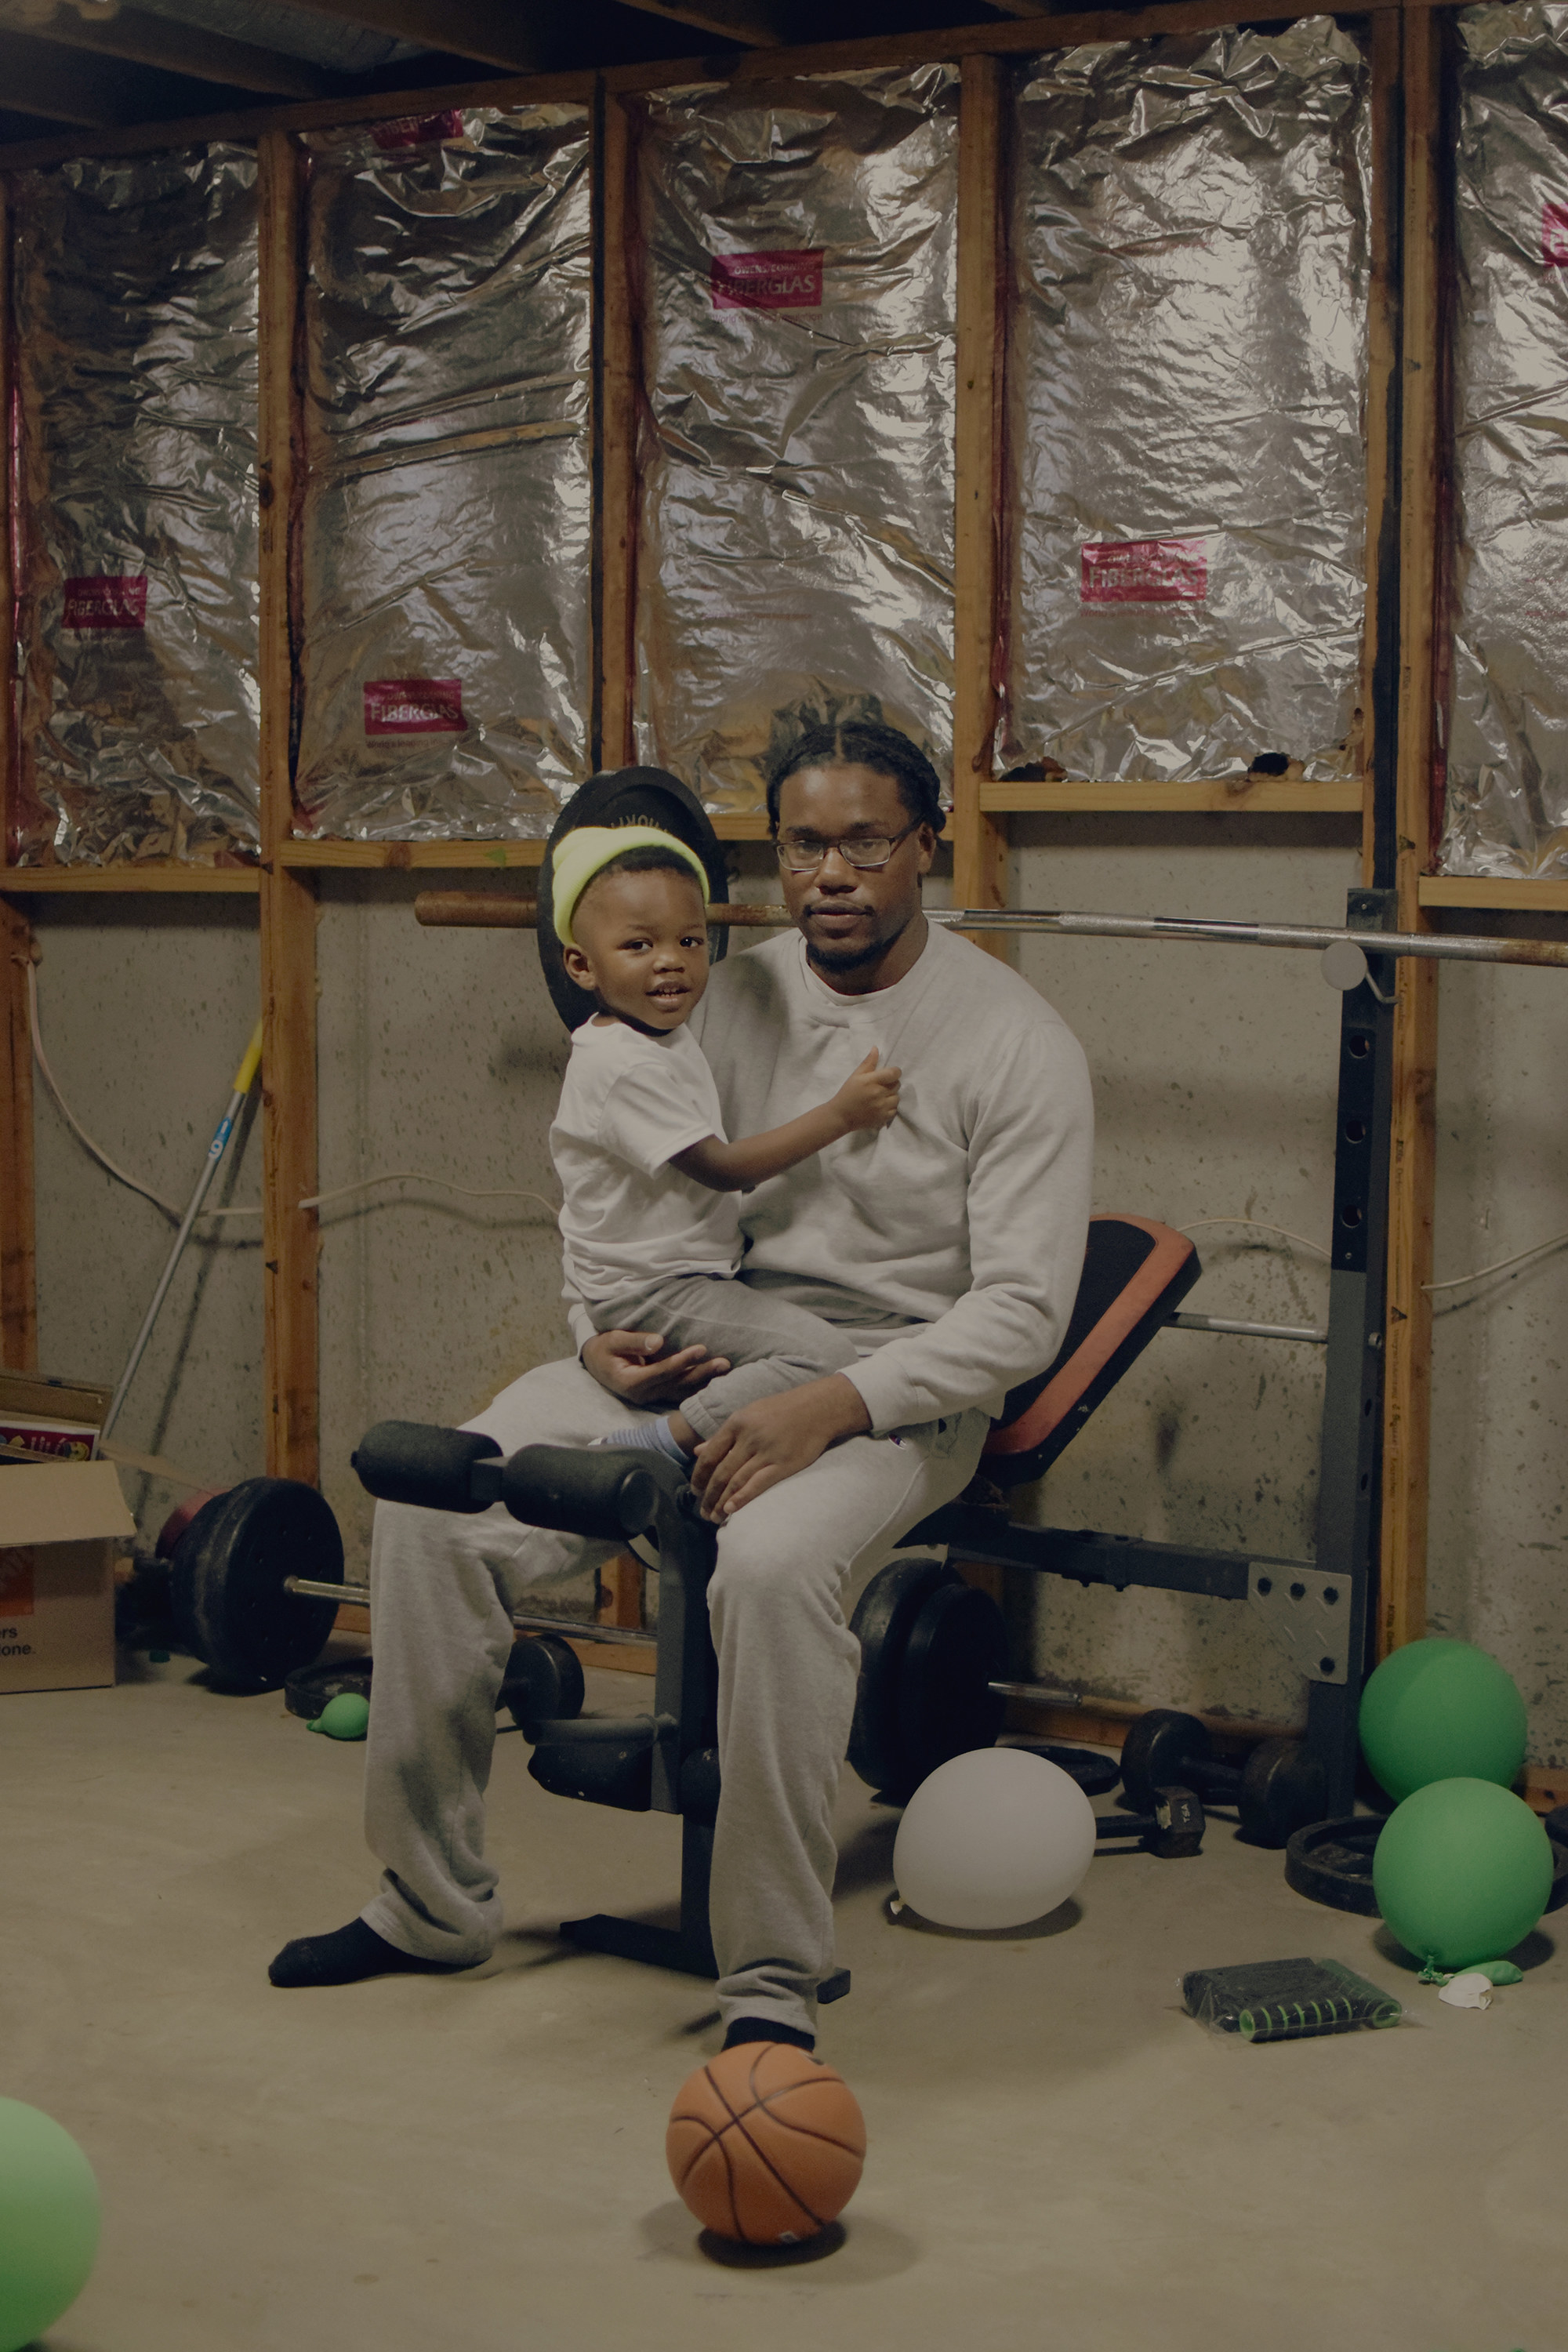 A man in a home gym holding a toddler